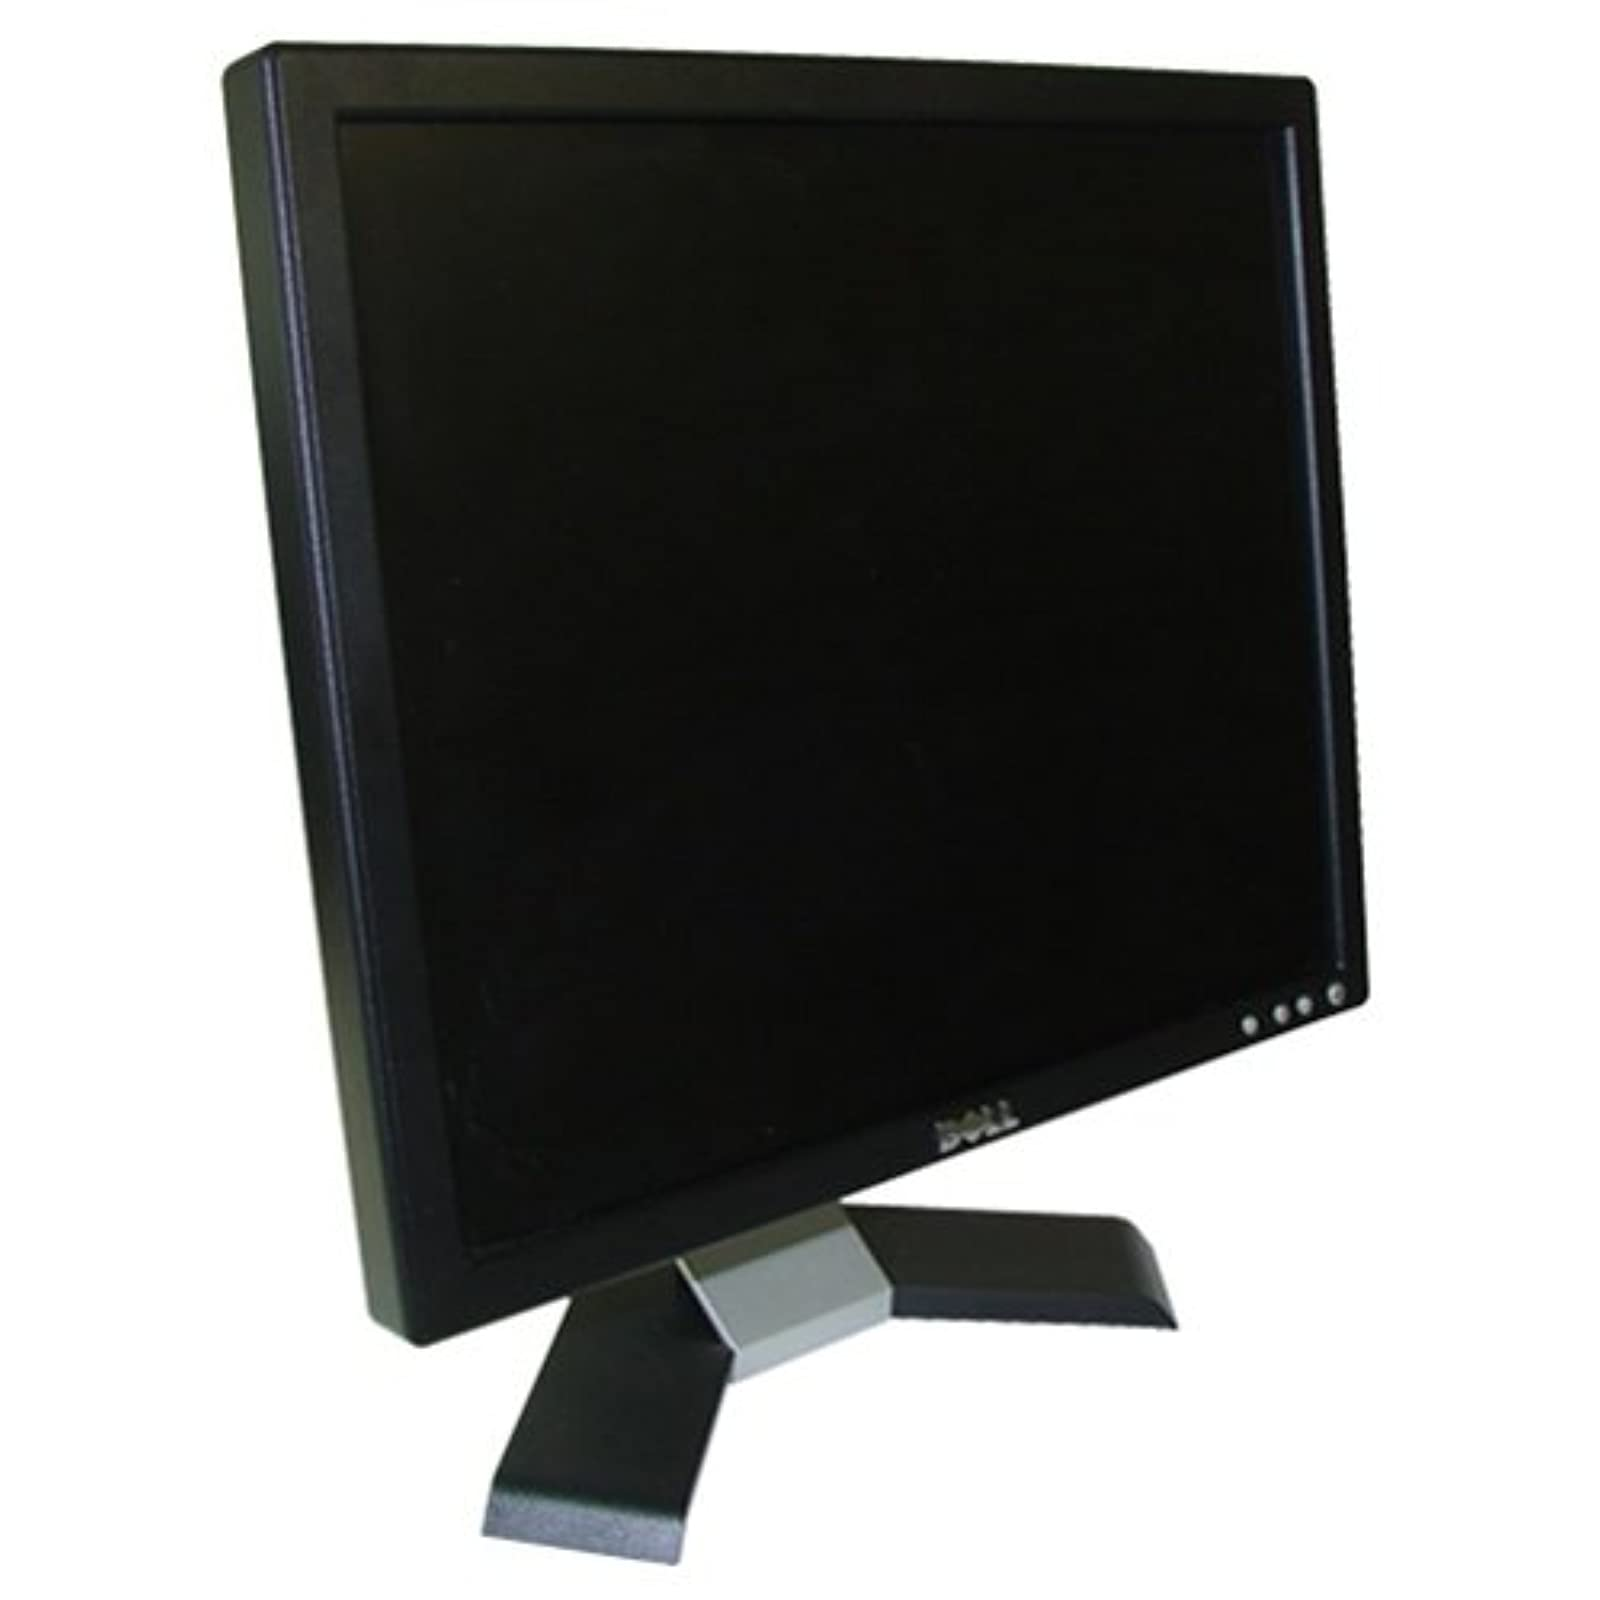 P170ST Dell 17 Inch LCD Flat Panel Display Black Monitor